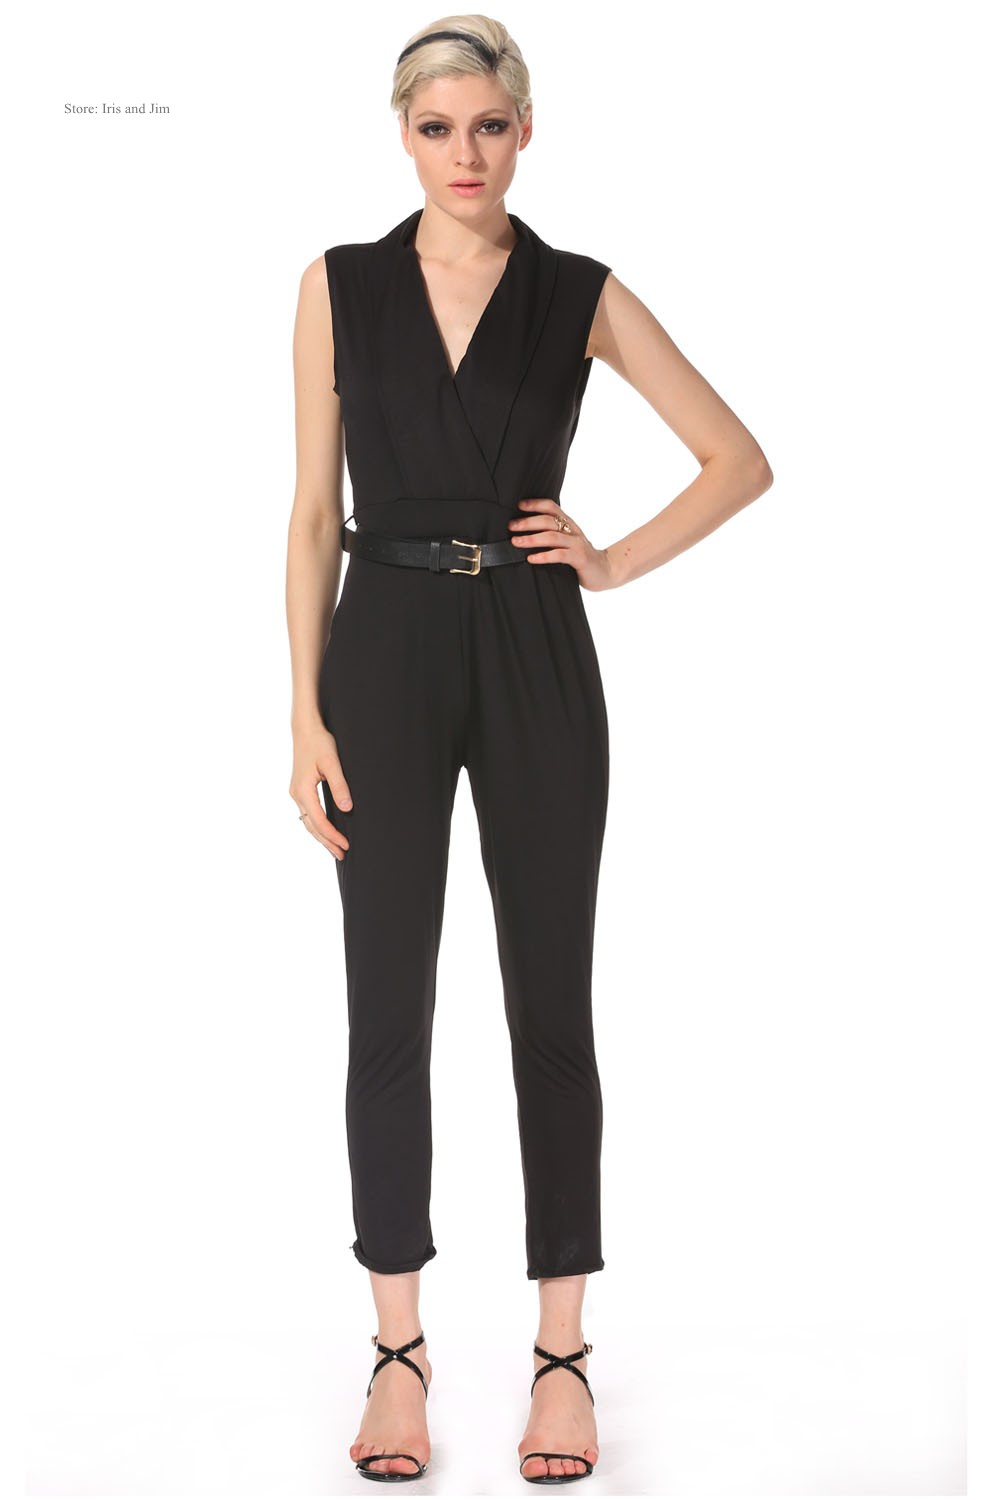 Fantastic Using A Wrap And Fourbutton Closure, The Jumpsuits Give Way To Flexibility And Ease Of Wear&quot The Classic Style Has A Wrap Detail At The Waist And A Cutout Detail At The Back The All Day Style Has A Casual Drape  Isla At The Womens Bag